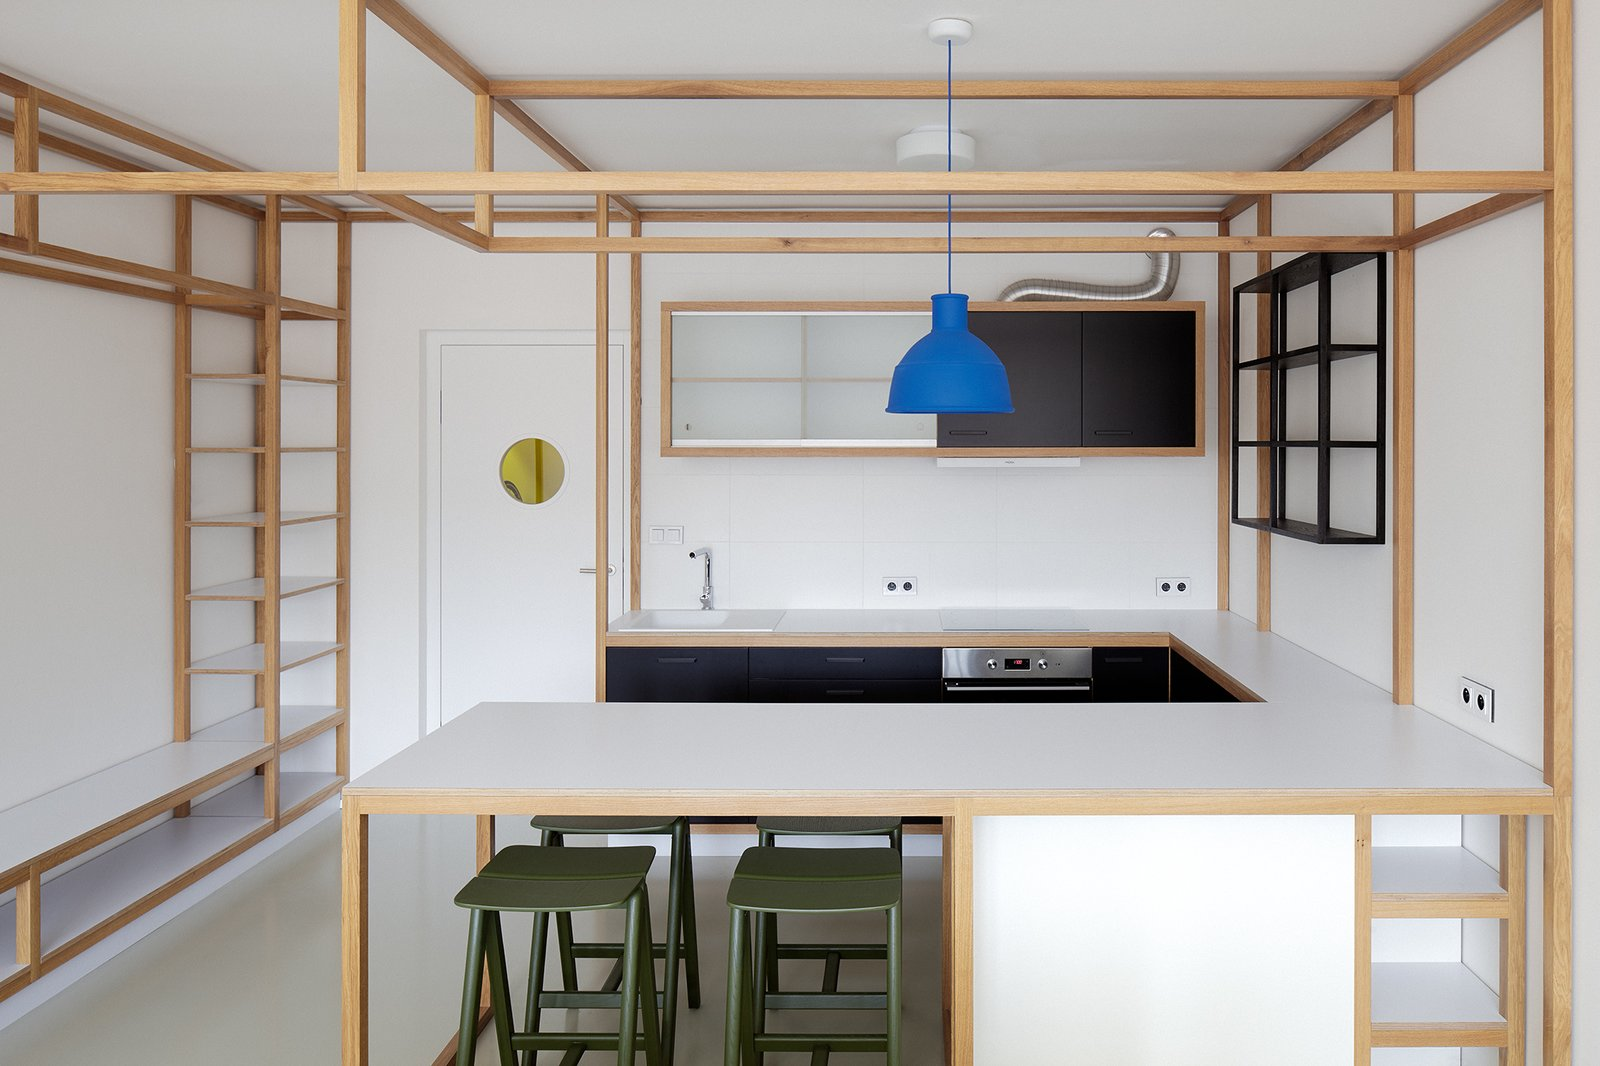 Kitchen, Laminate Counter, Pendant Lighting, Concrete Floor, Cooktops, and Drop In Sink The kitchen appliances are by Mora and the sink is by Franke.  Photos from Strikingly Minimal